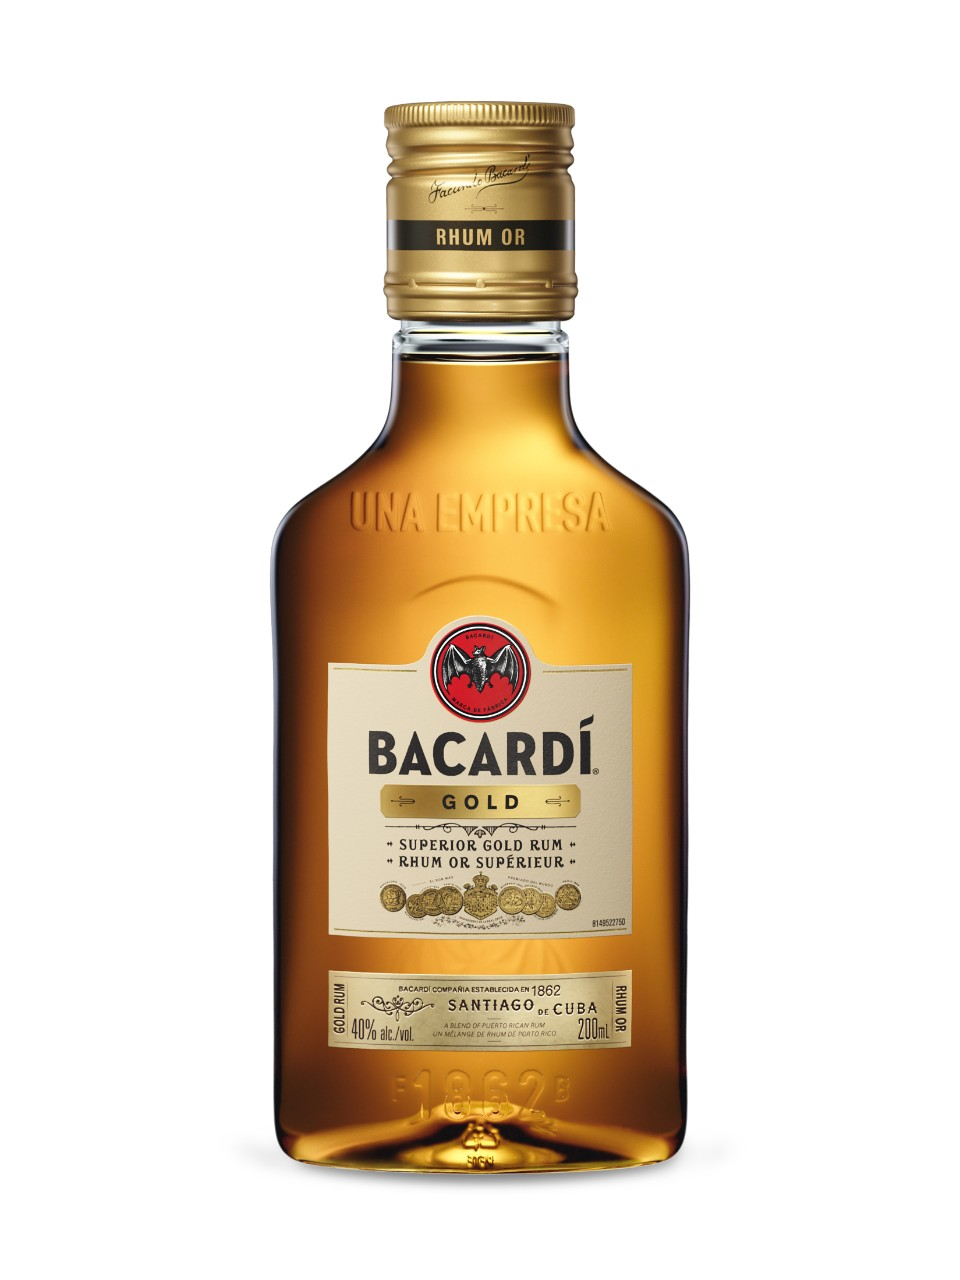 Bacardi - Silver Superior Rum - Young's Fine Wines & Spirits |Bacardi Silver Rum